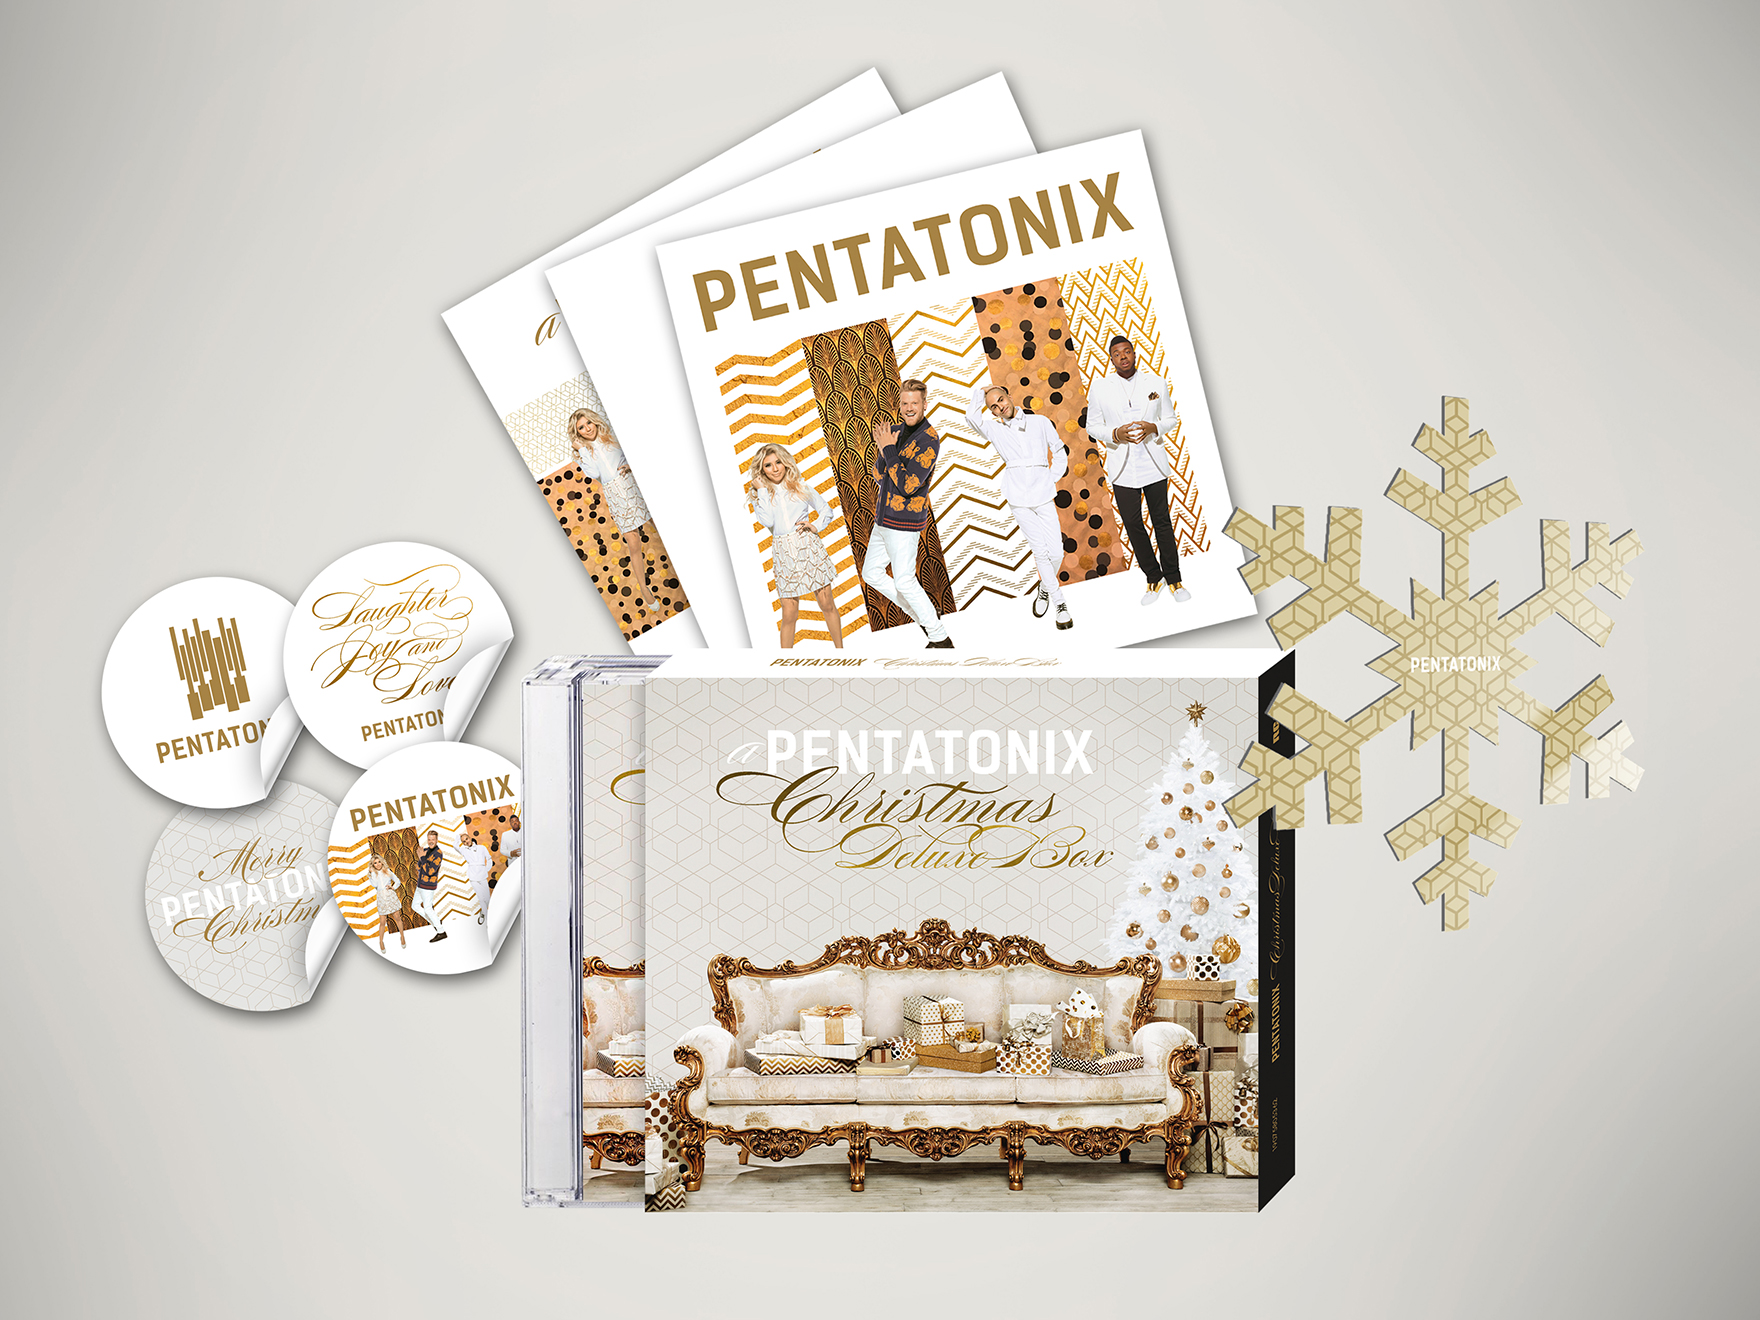 Sony Music Pentatonix Deluxe Christmas